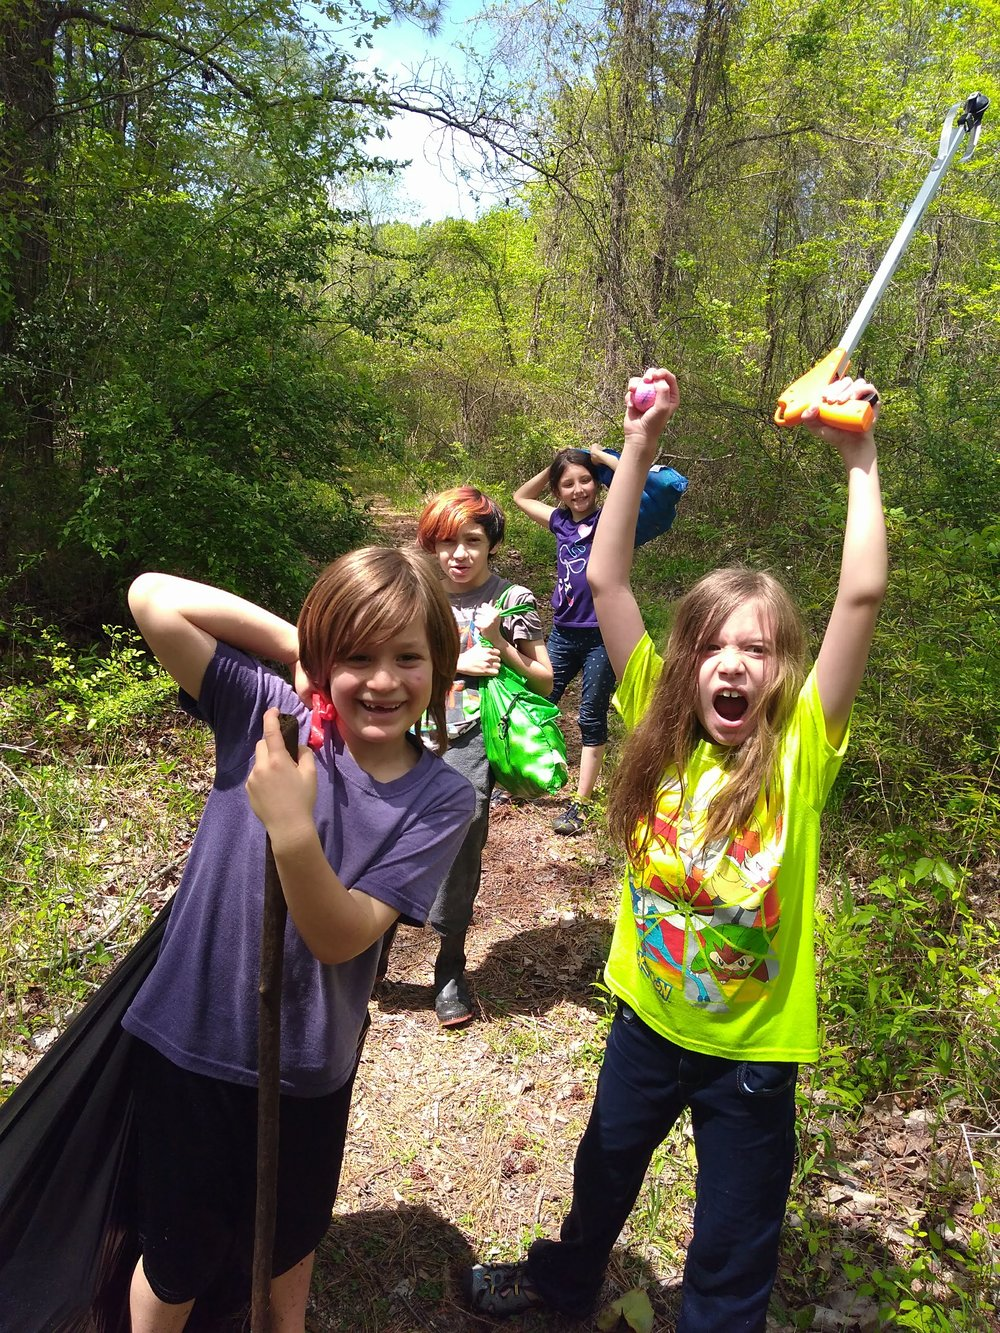 Pathfinder kids picking up trash, author's daughter front right.